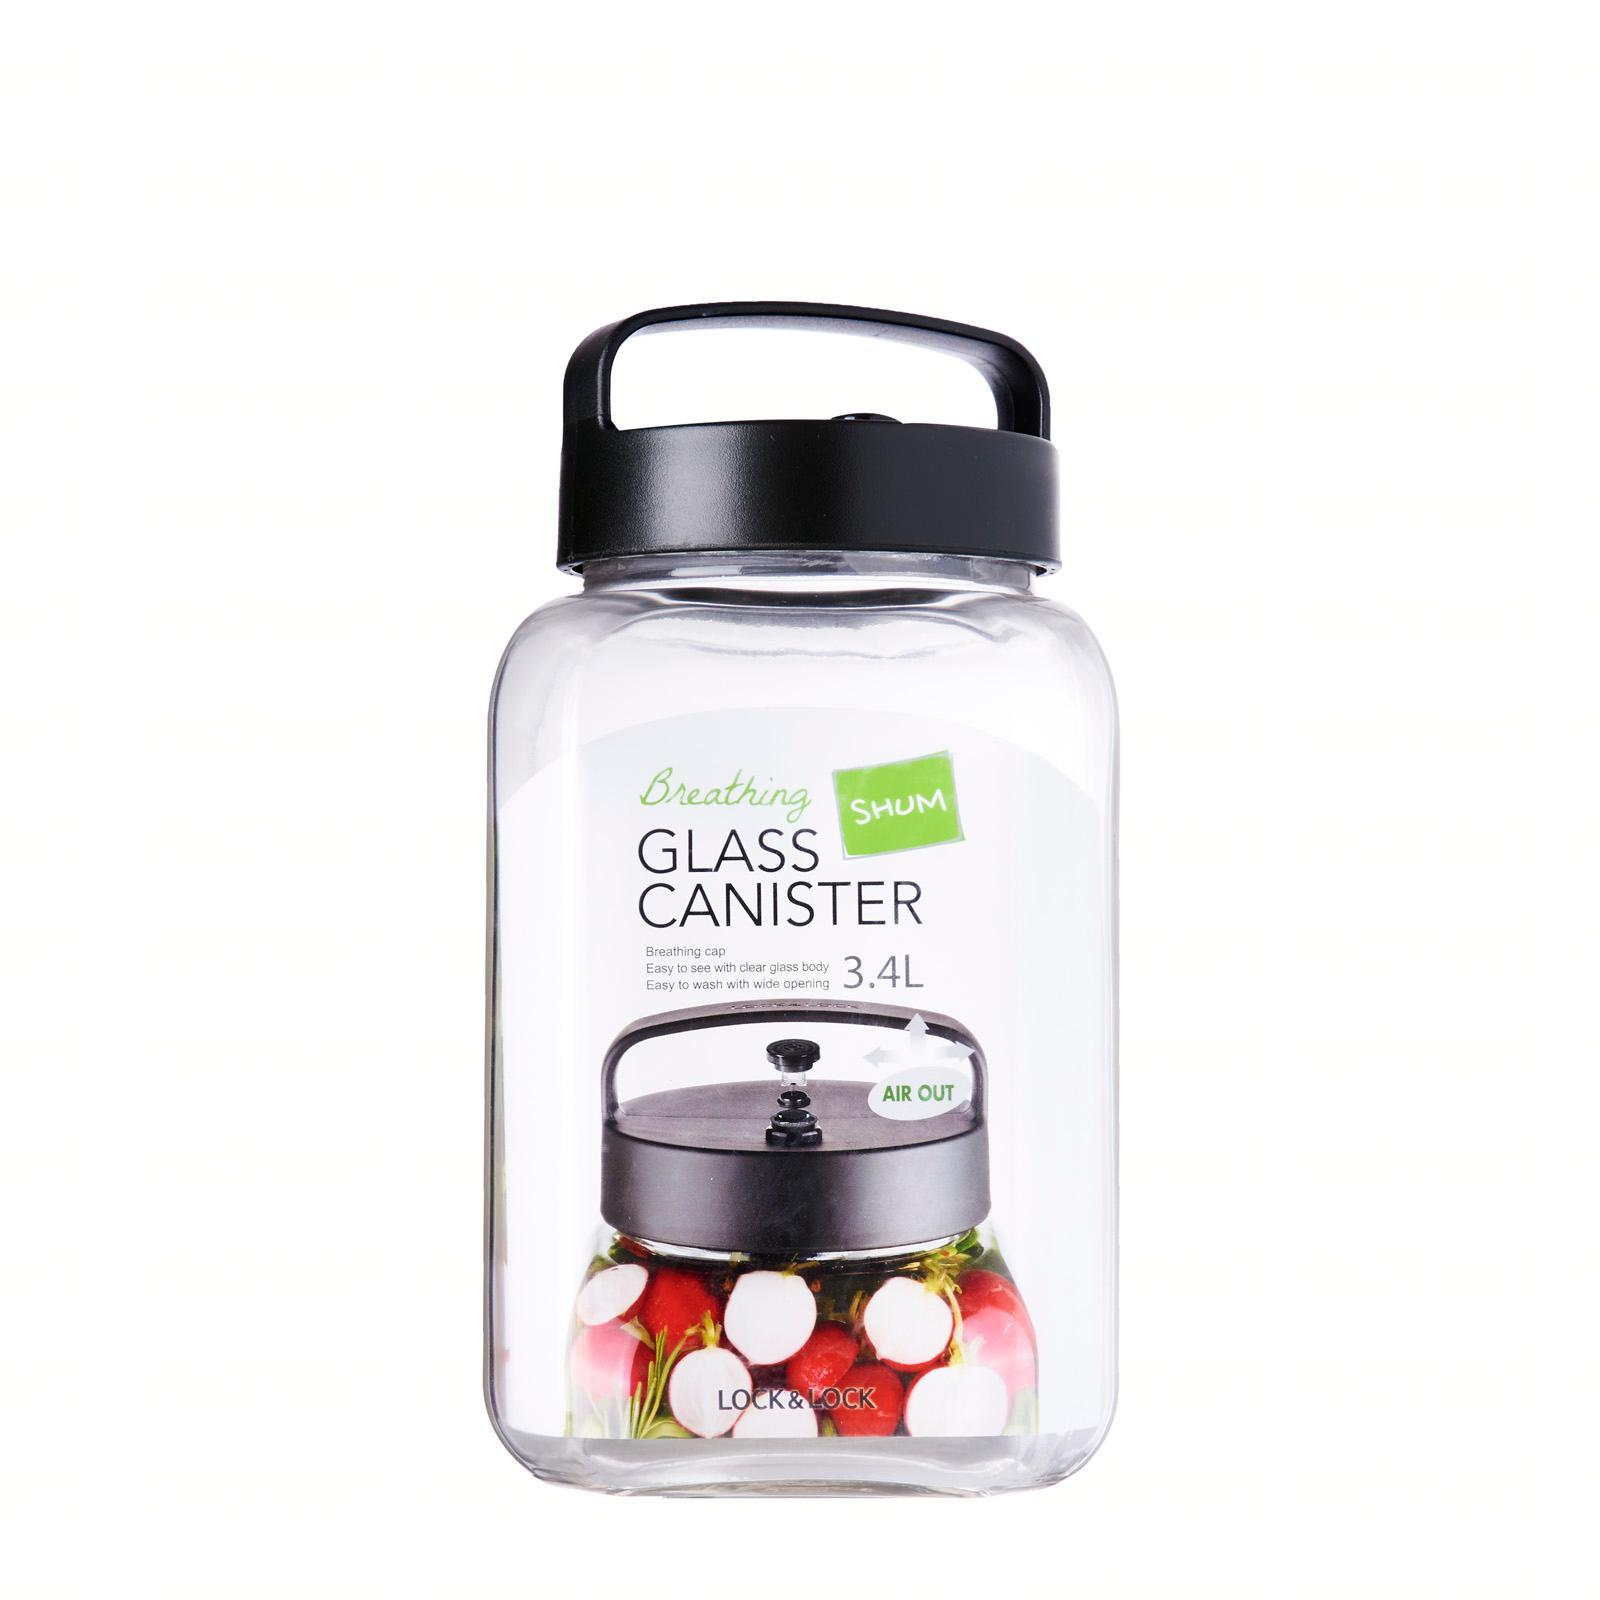 Lock and Lock Breathing Glass Canister With Handy 3.4L